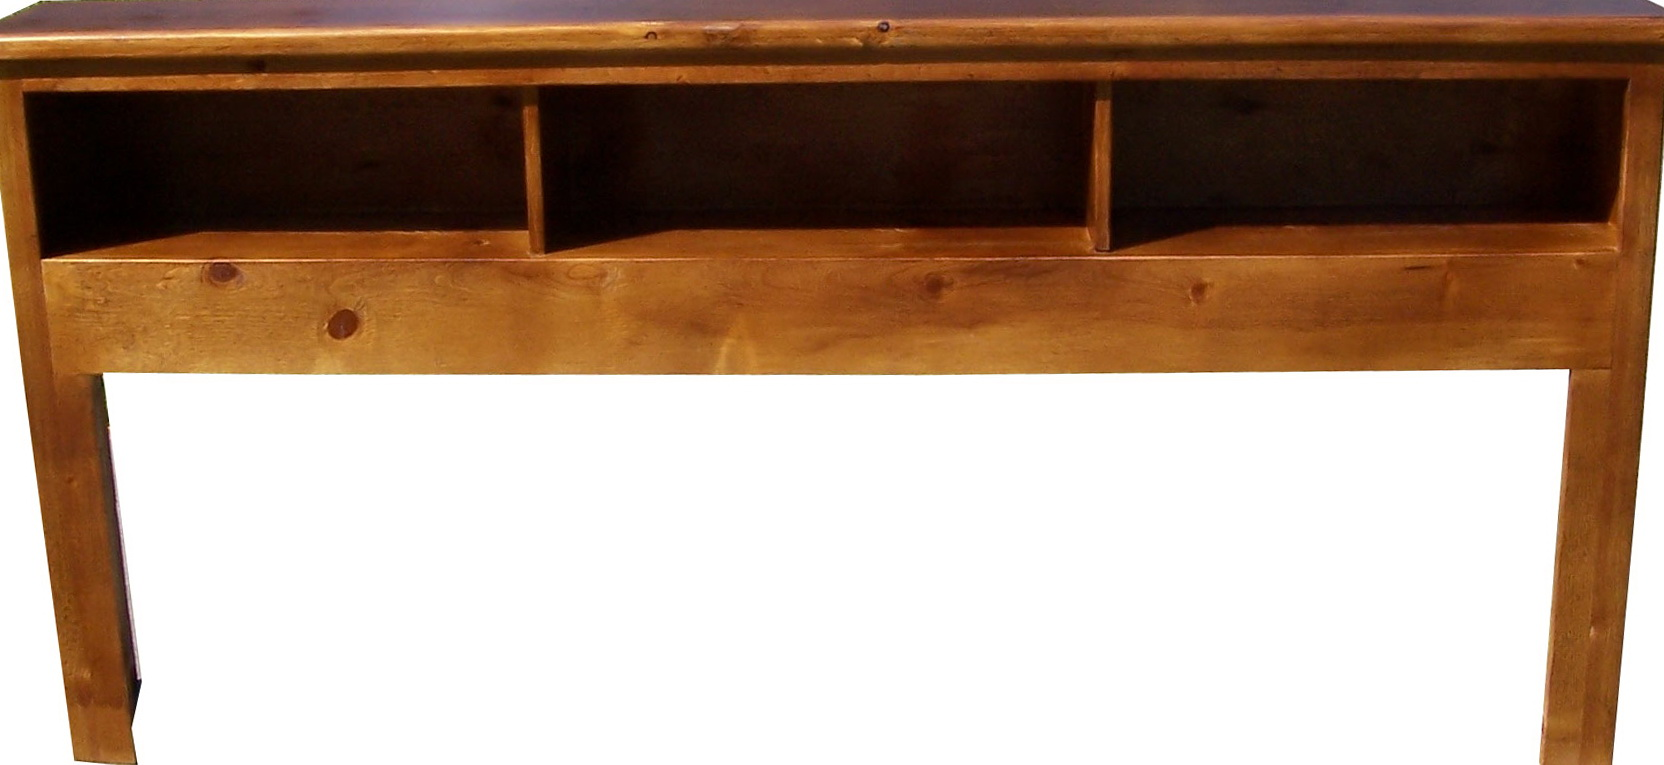 Permalink to Solid Wood Bookcase Headboard